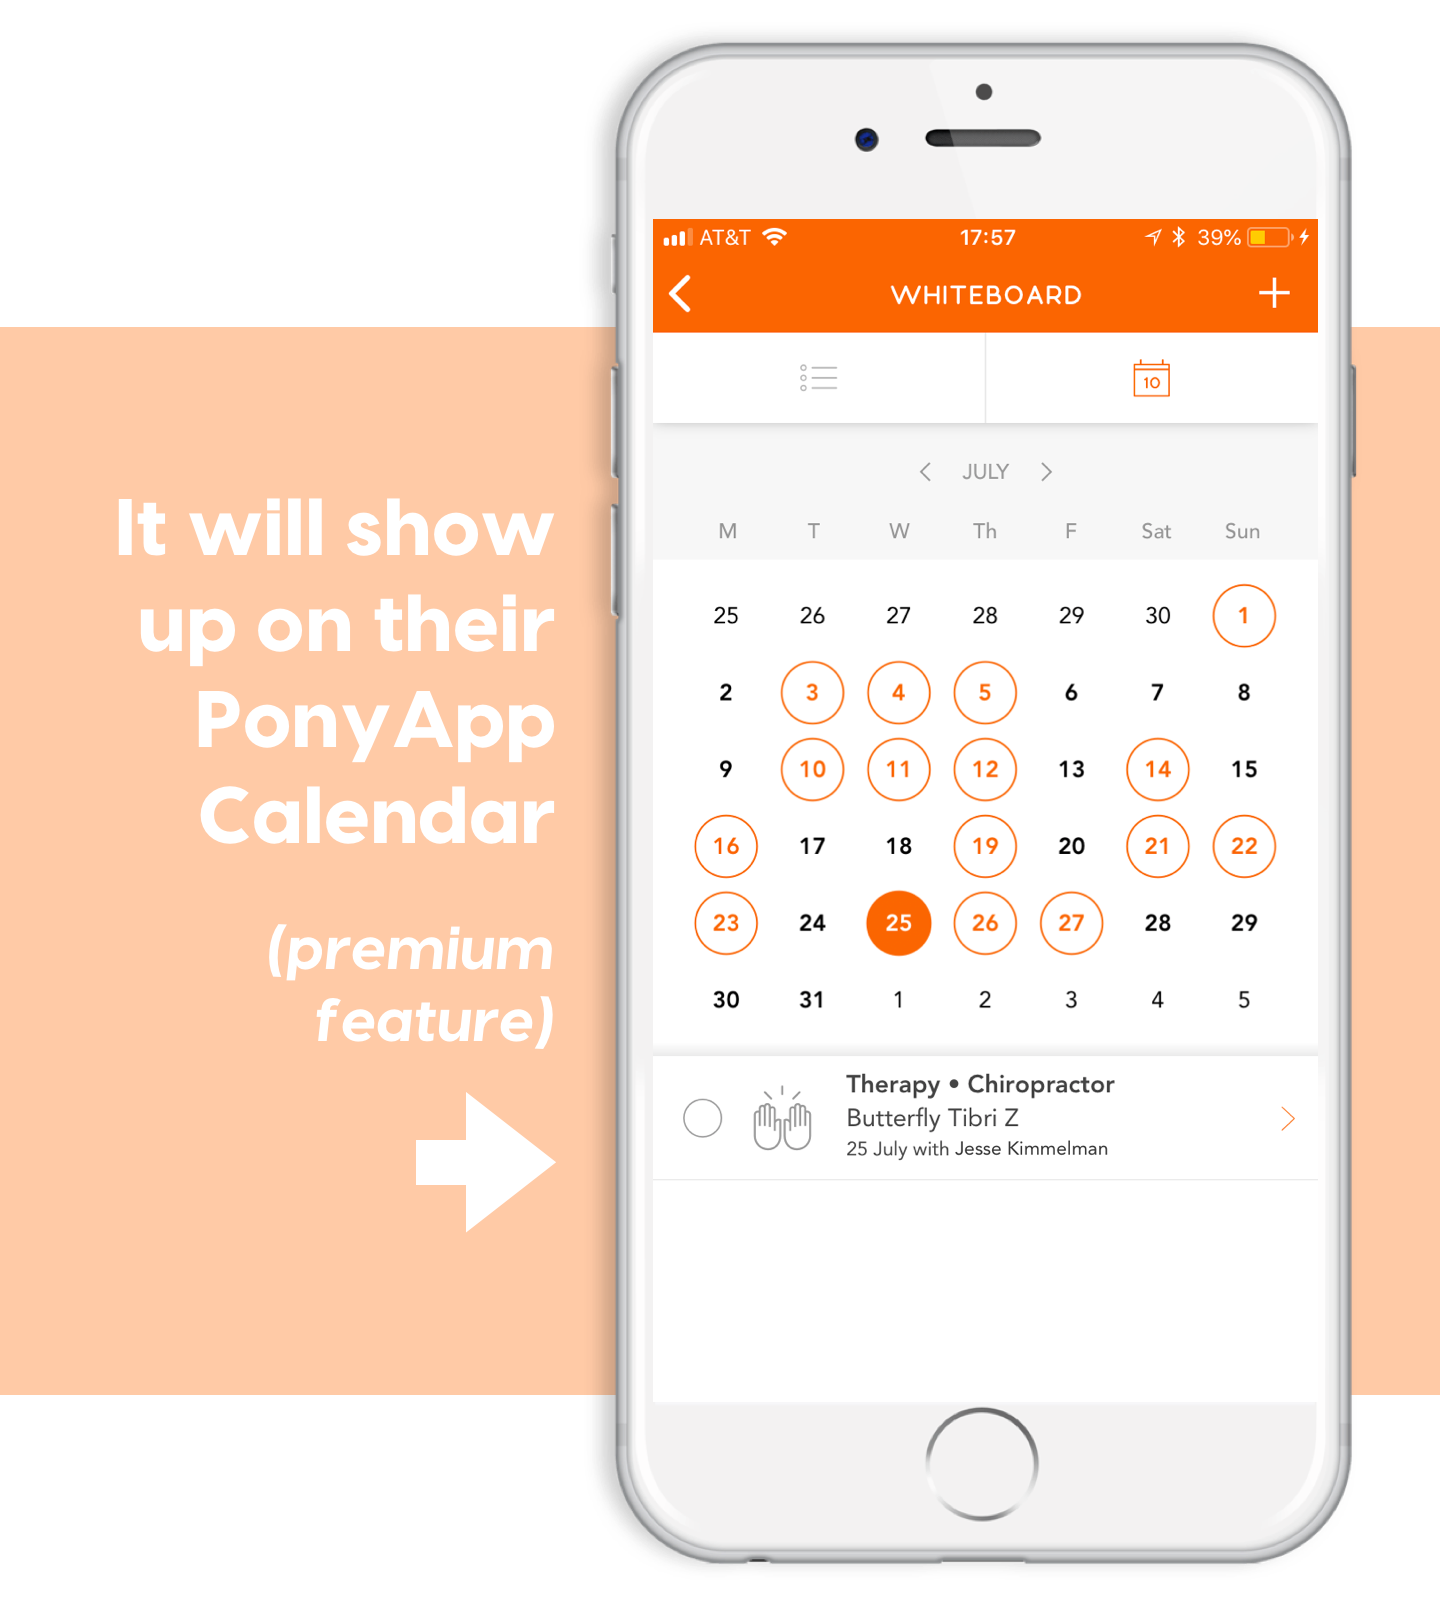 notification takes you to calendar on ponyapp schedule